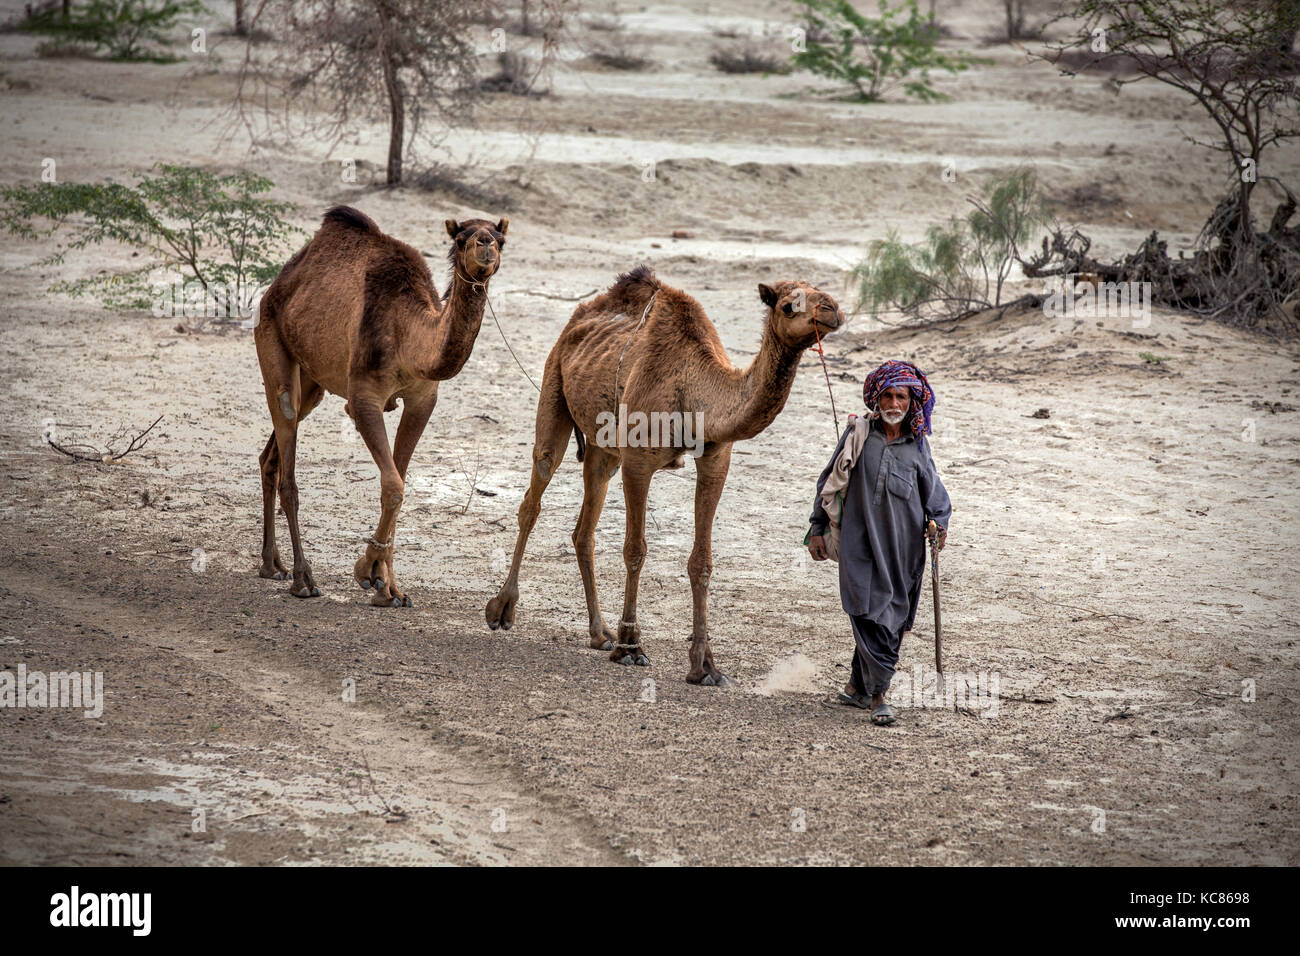 Man walks his camels through barren land of Makran, Baluchistan Pakistan. Nomads covers miles and miles in search - Stock Image